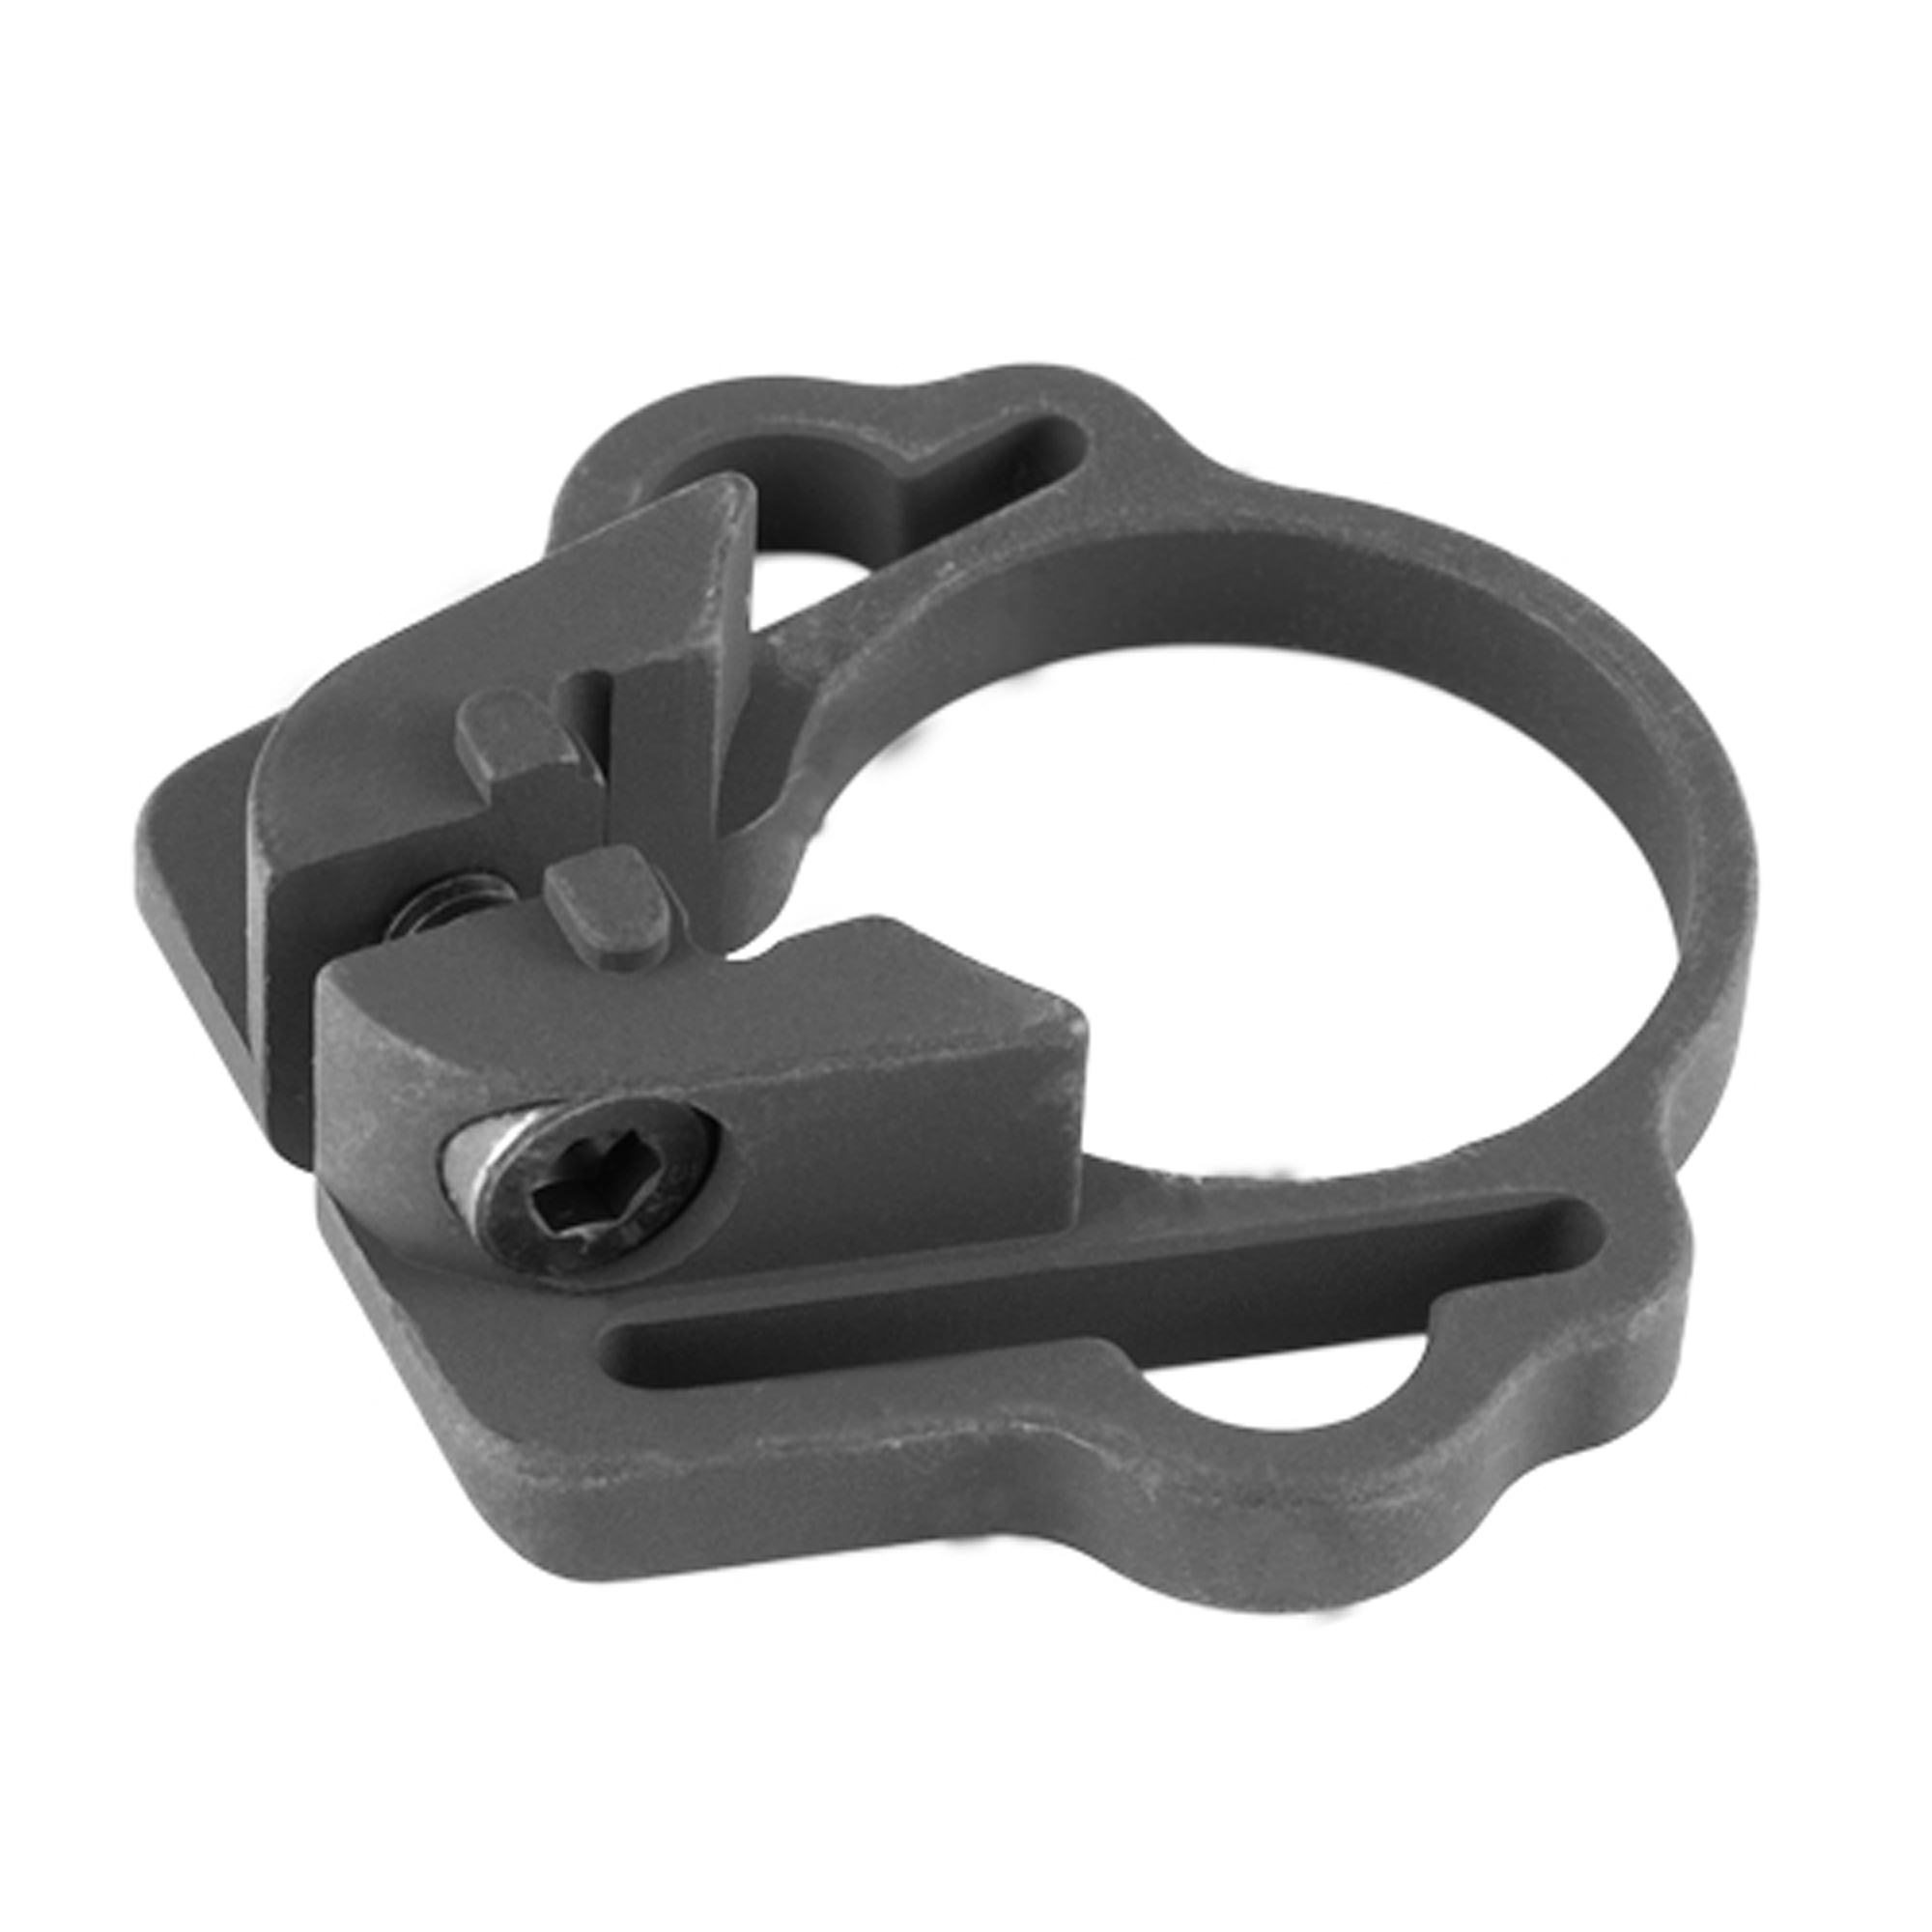 """One Point Sling Mount is a single point sling mount for snap clips or conventional slings up to 1.25"""" webbing. No tube disassembly necessary; remove collapsible buttstock"""" slide on tube"""" position properly and secure. CNC machined from aviation grade aluminum with matte black finish."""